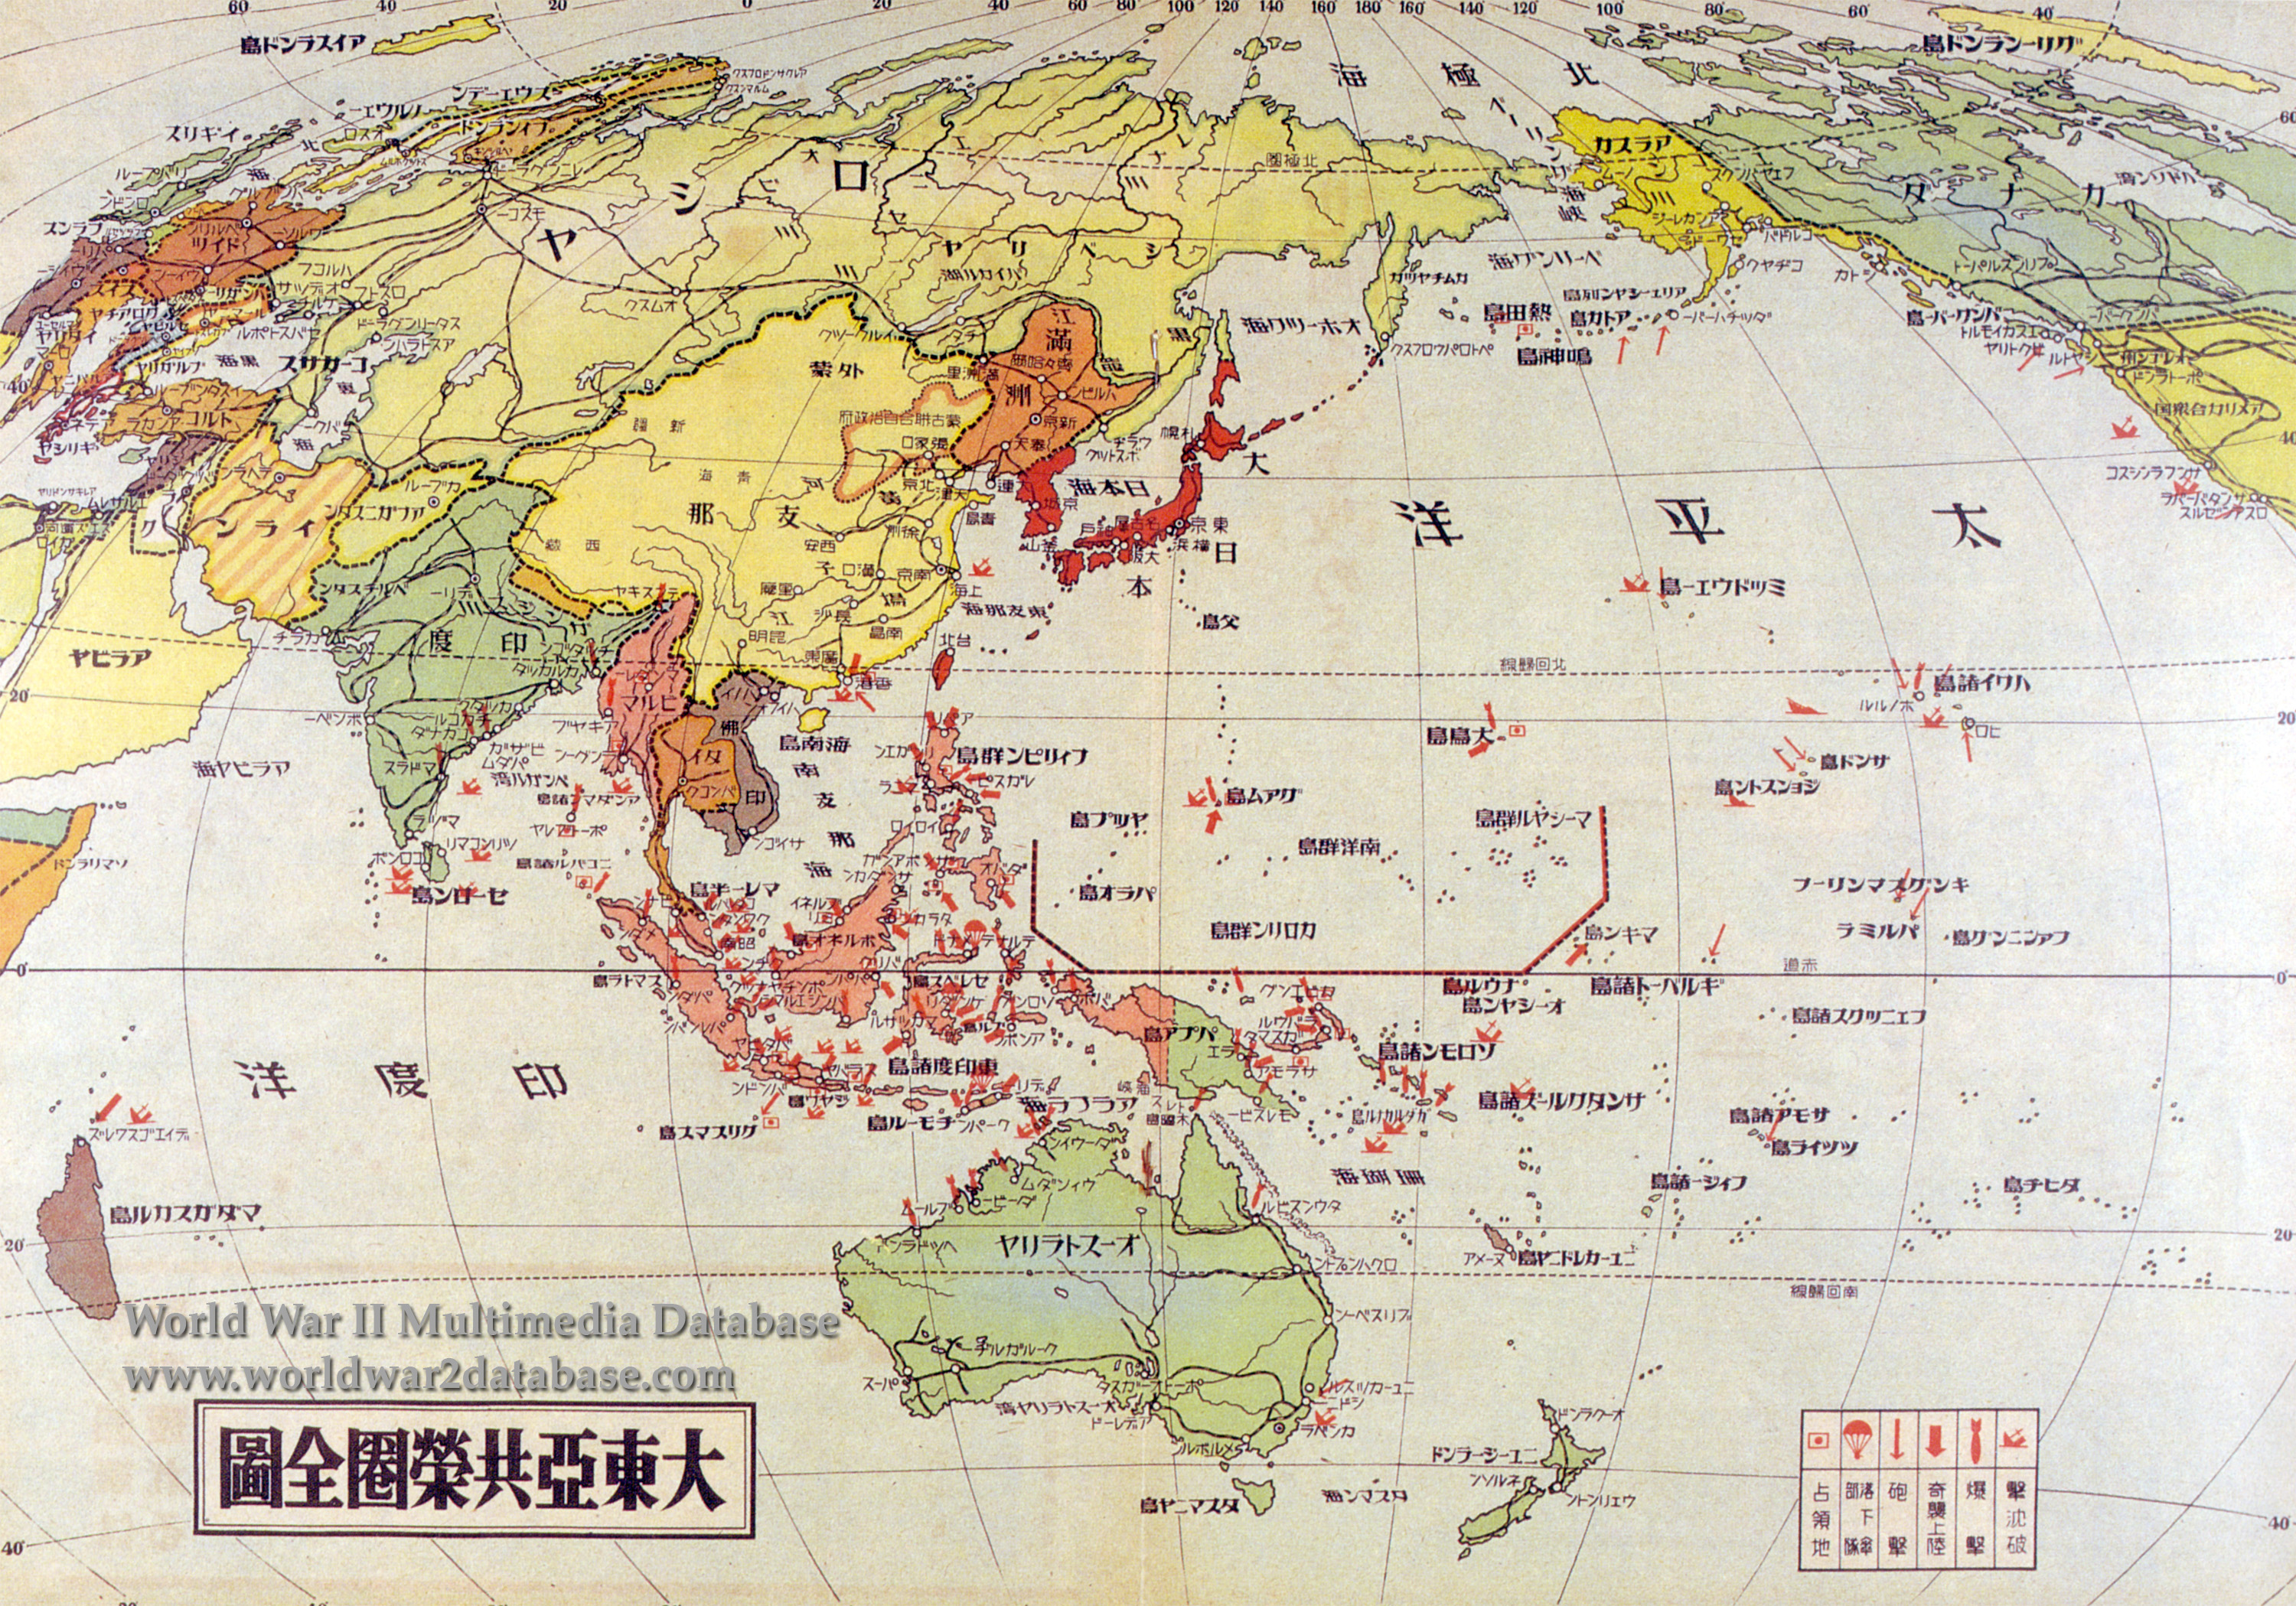 Japanese Pacific War Map | The World War II Multimedia Database